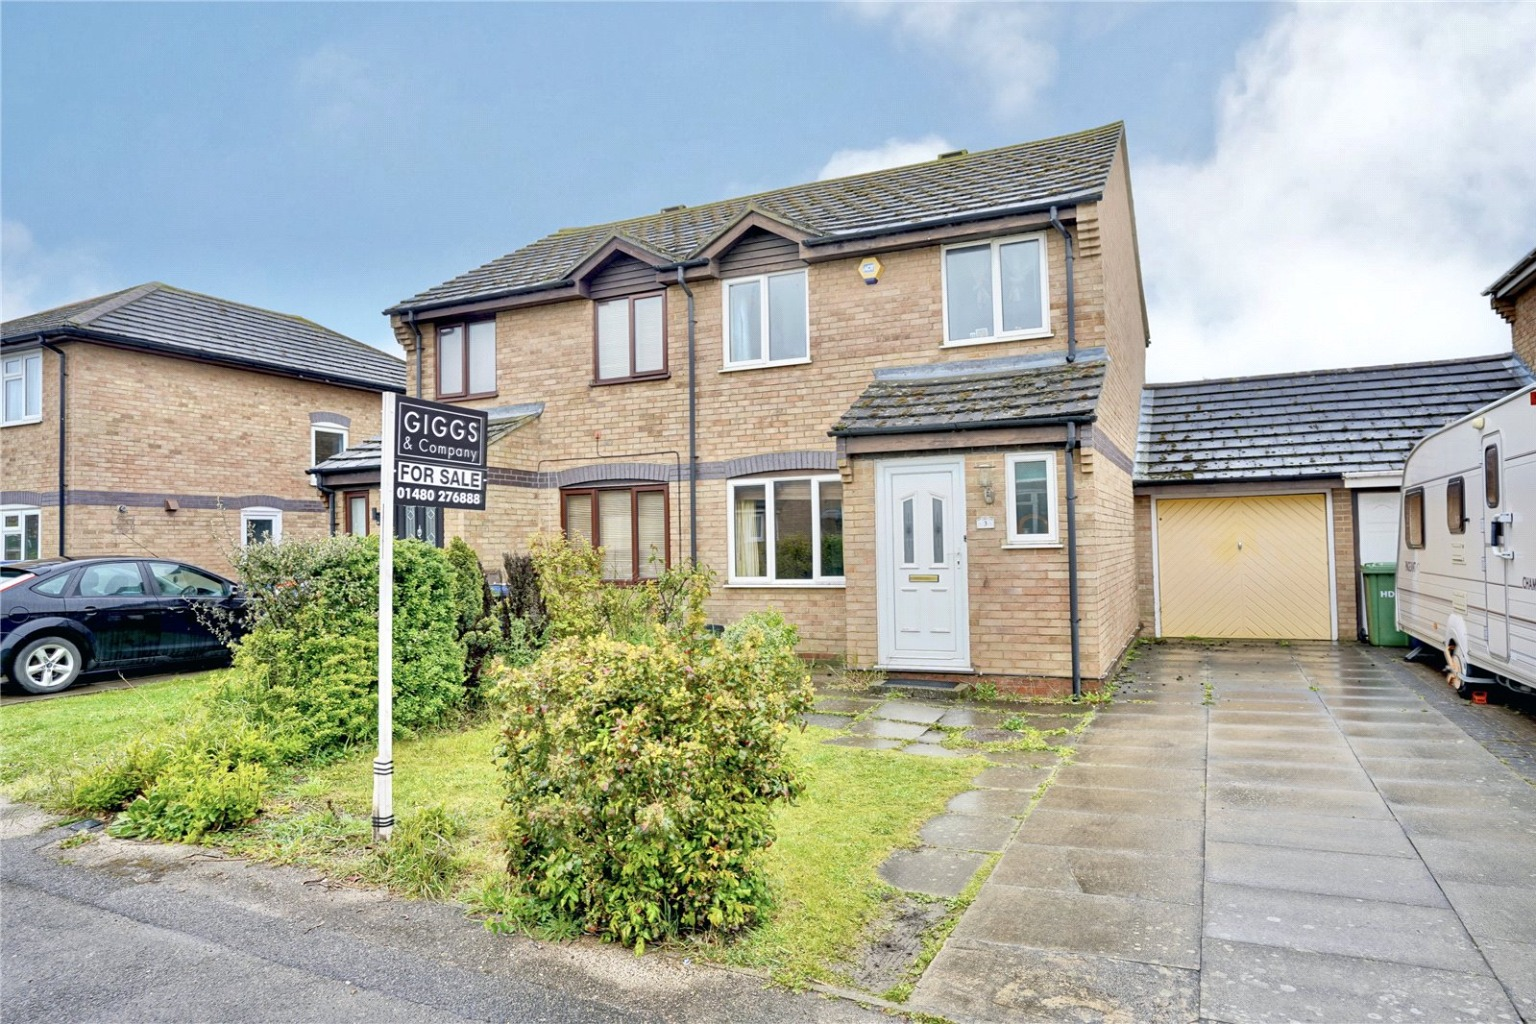 3 bed semi-detached house for sale in Pembroke Avenue, St. Neots  - Property Image 1